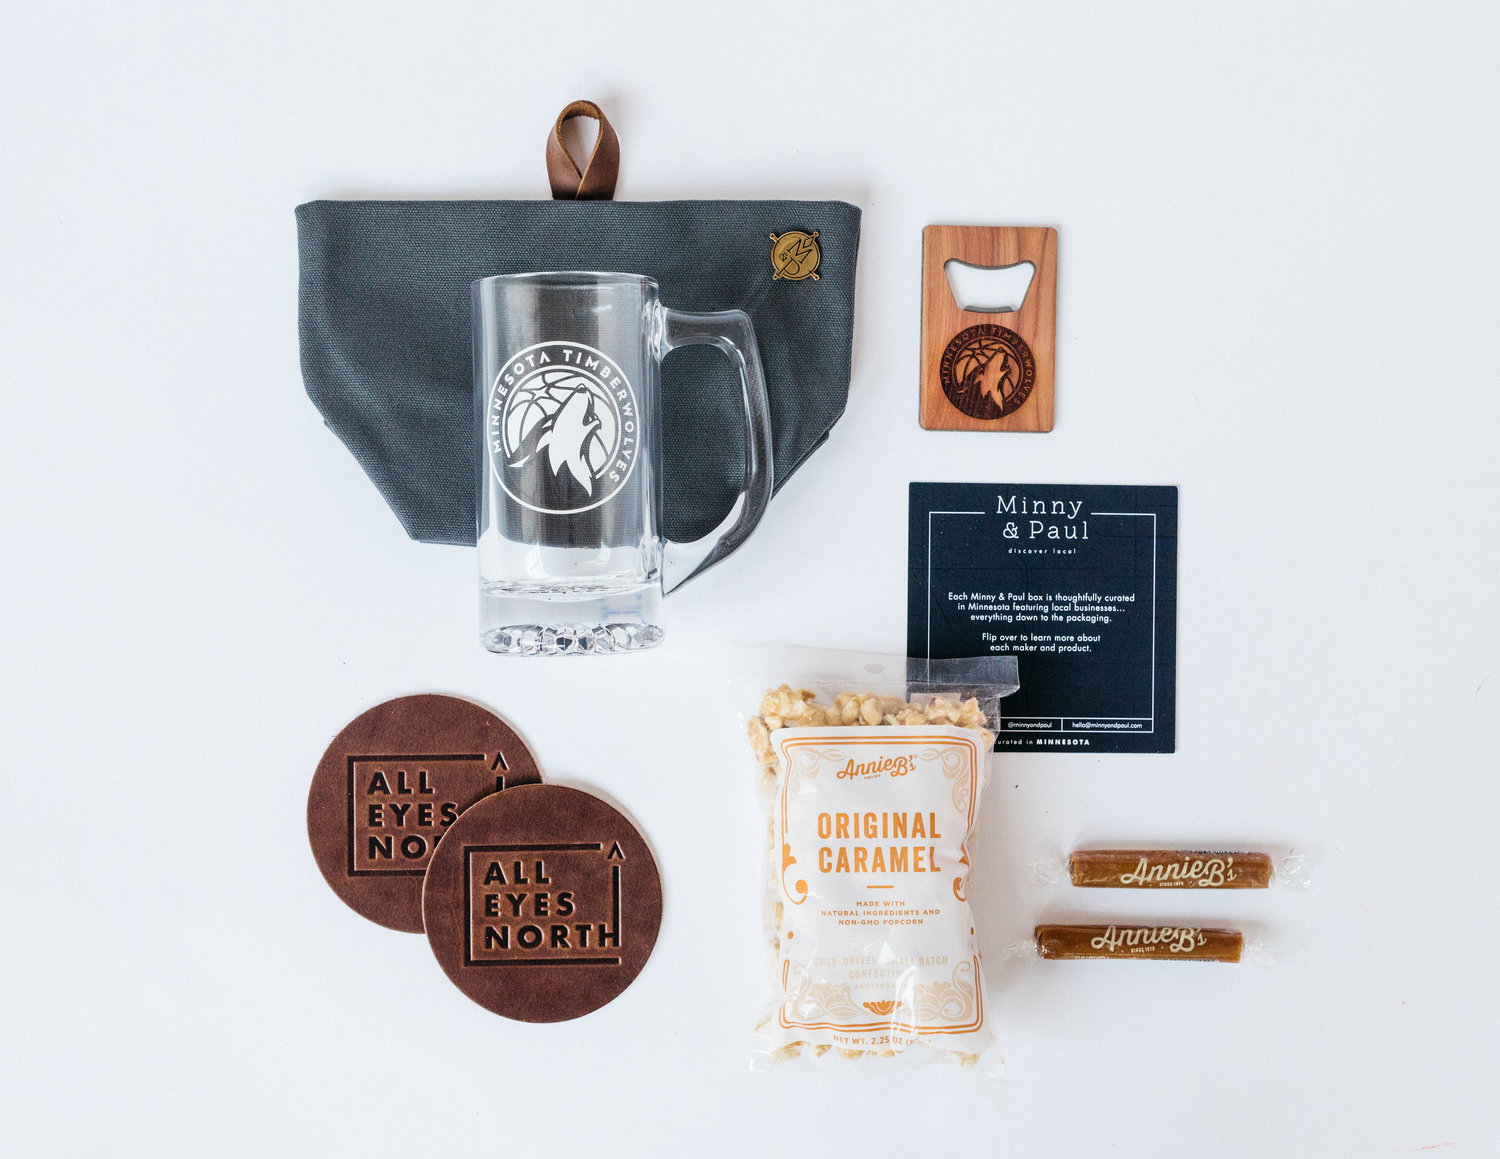 Minny & Paul - Corporate Gifting Sets